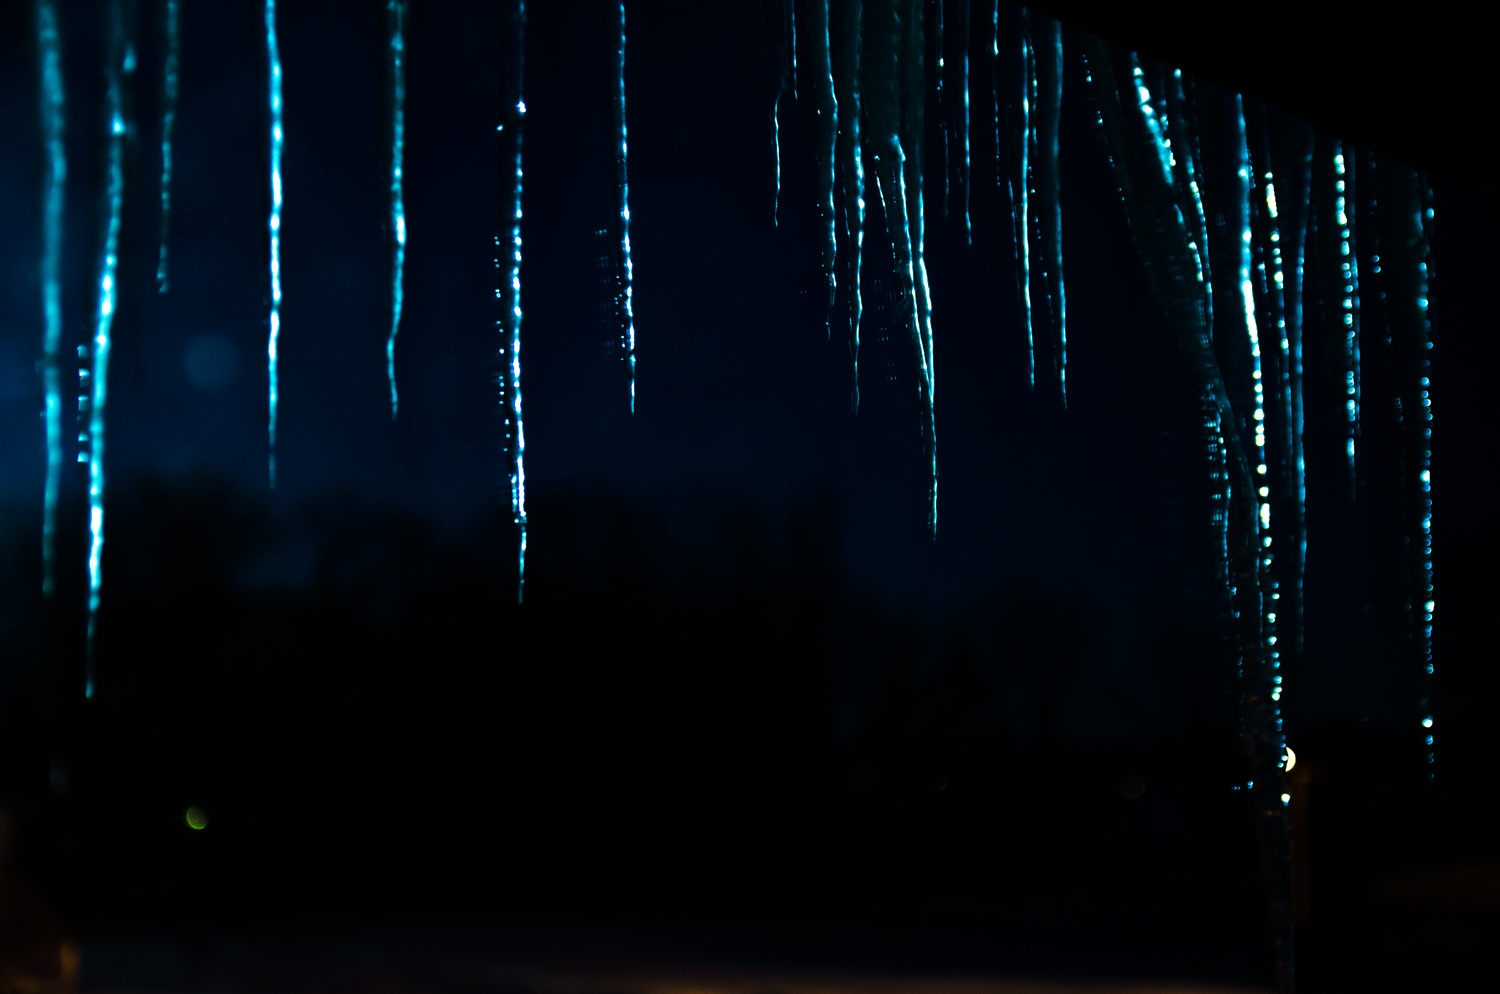 Image: These icicles are being lit by the cool light of the full moon.